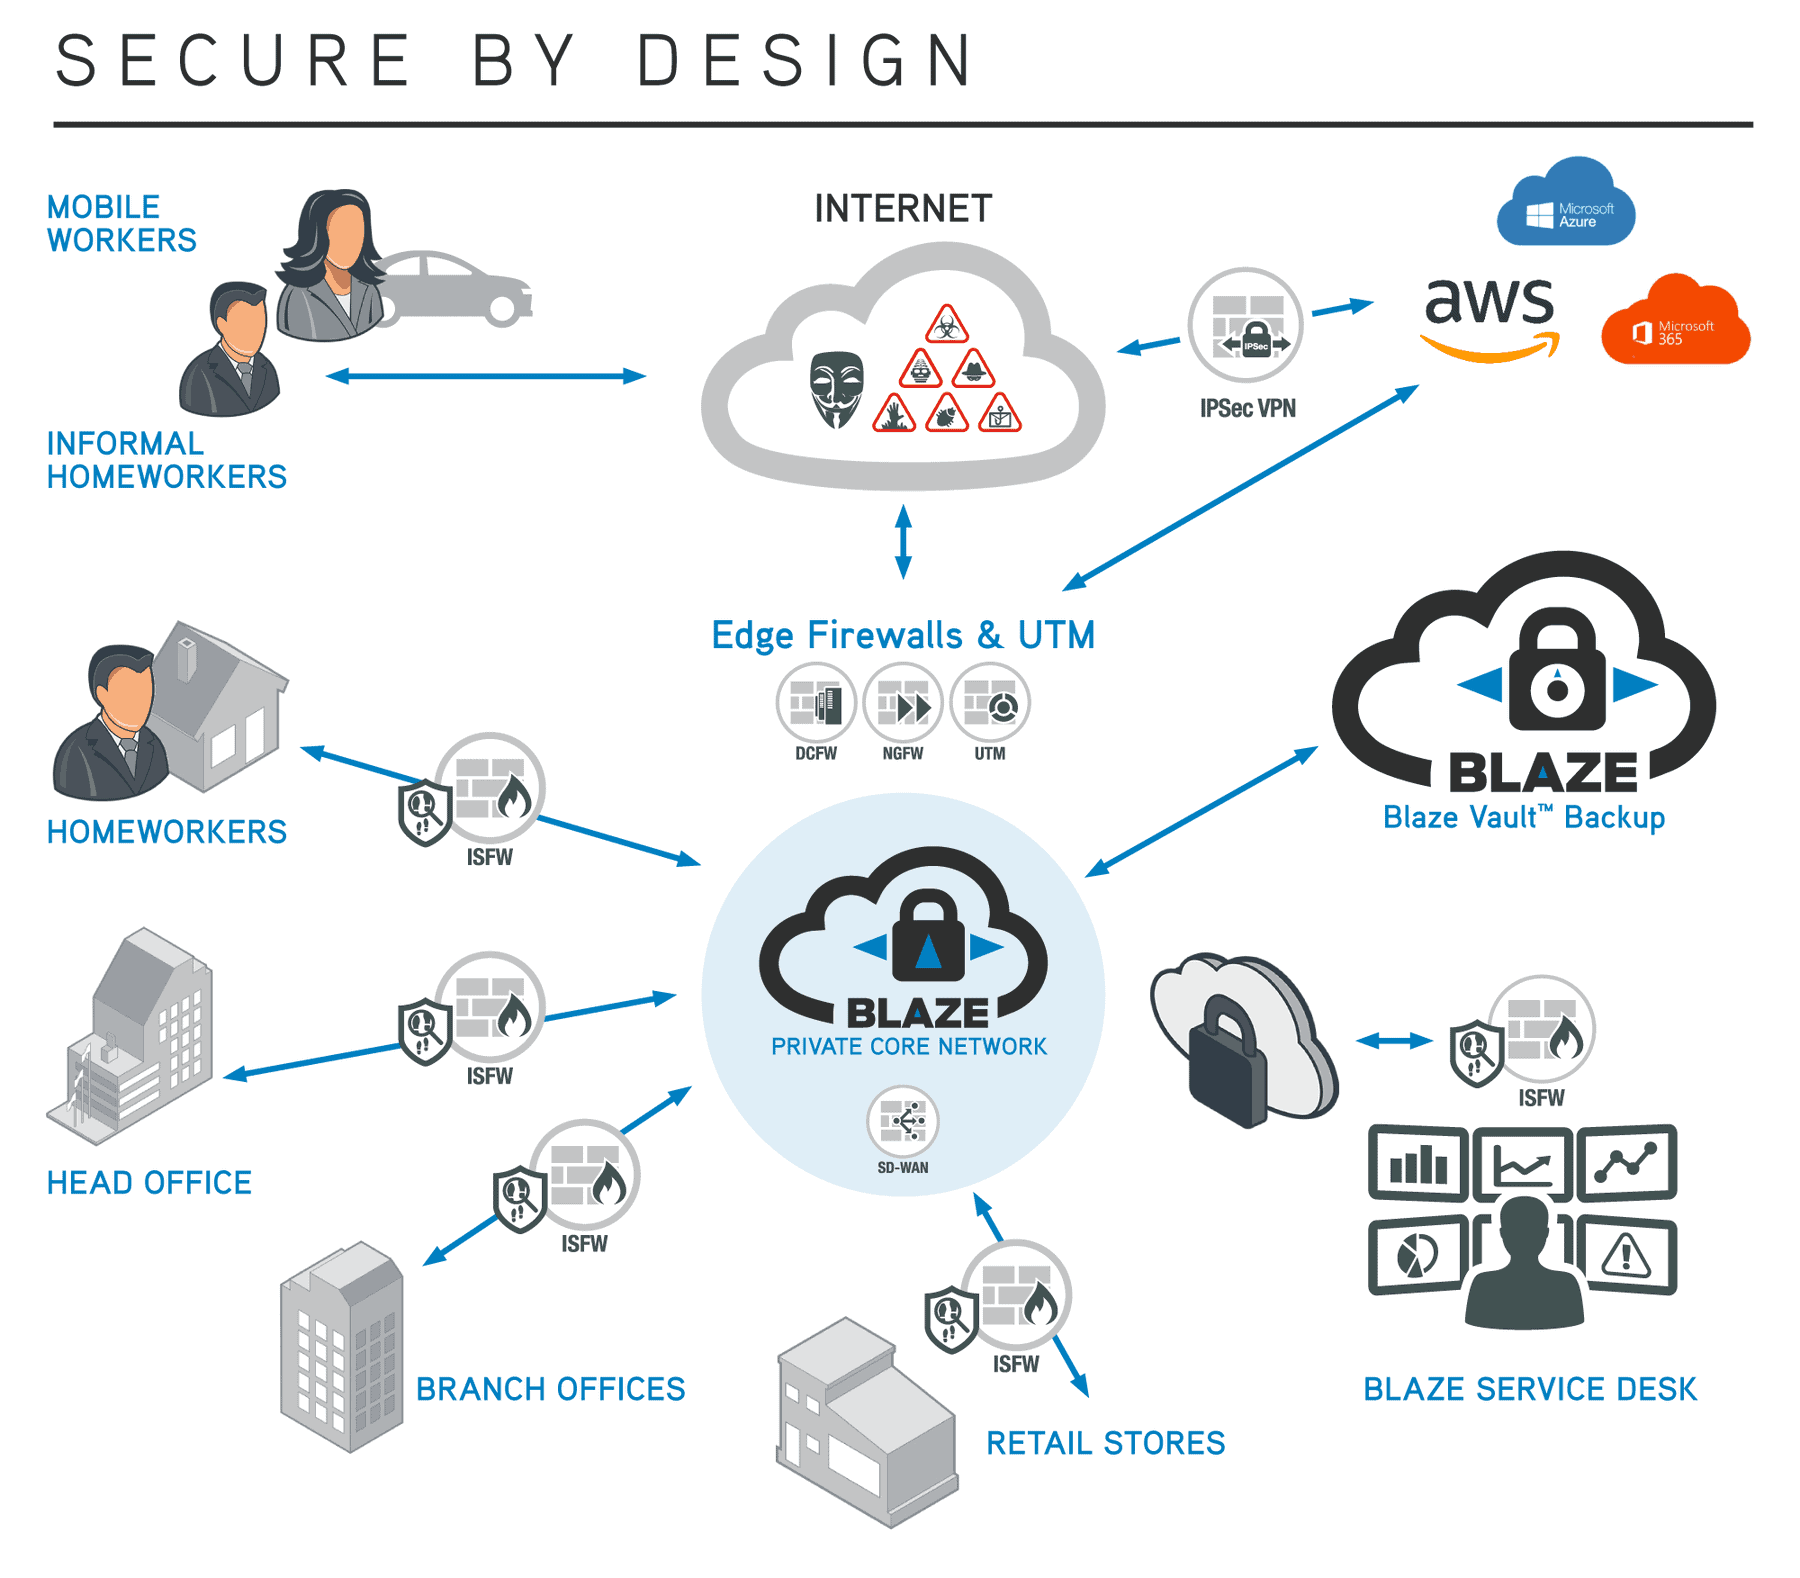 Diagram which shows that Blaze builds networks which are secure by design, based around the Blaze Private Core Network.